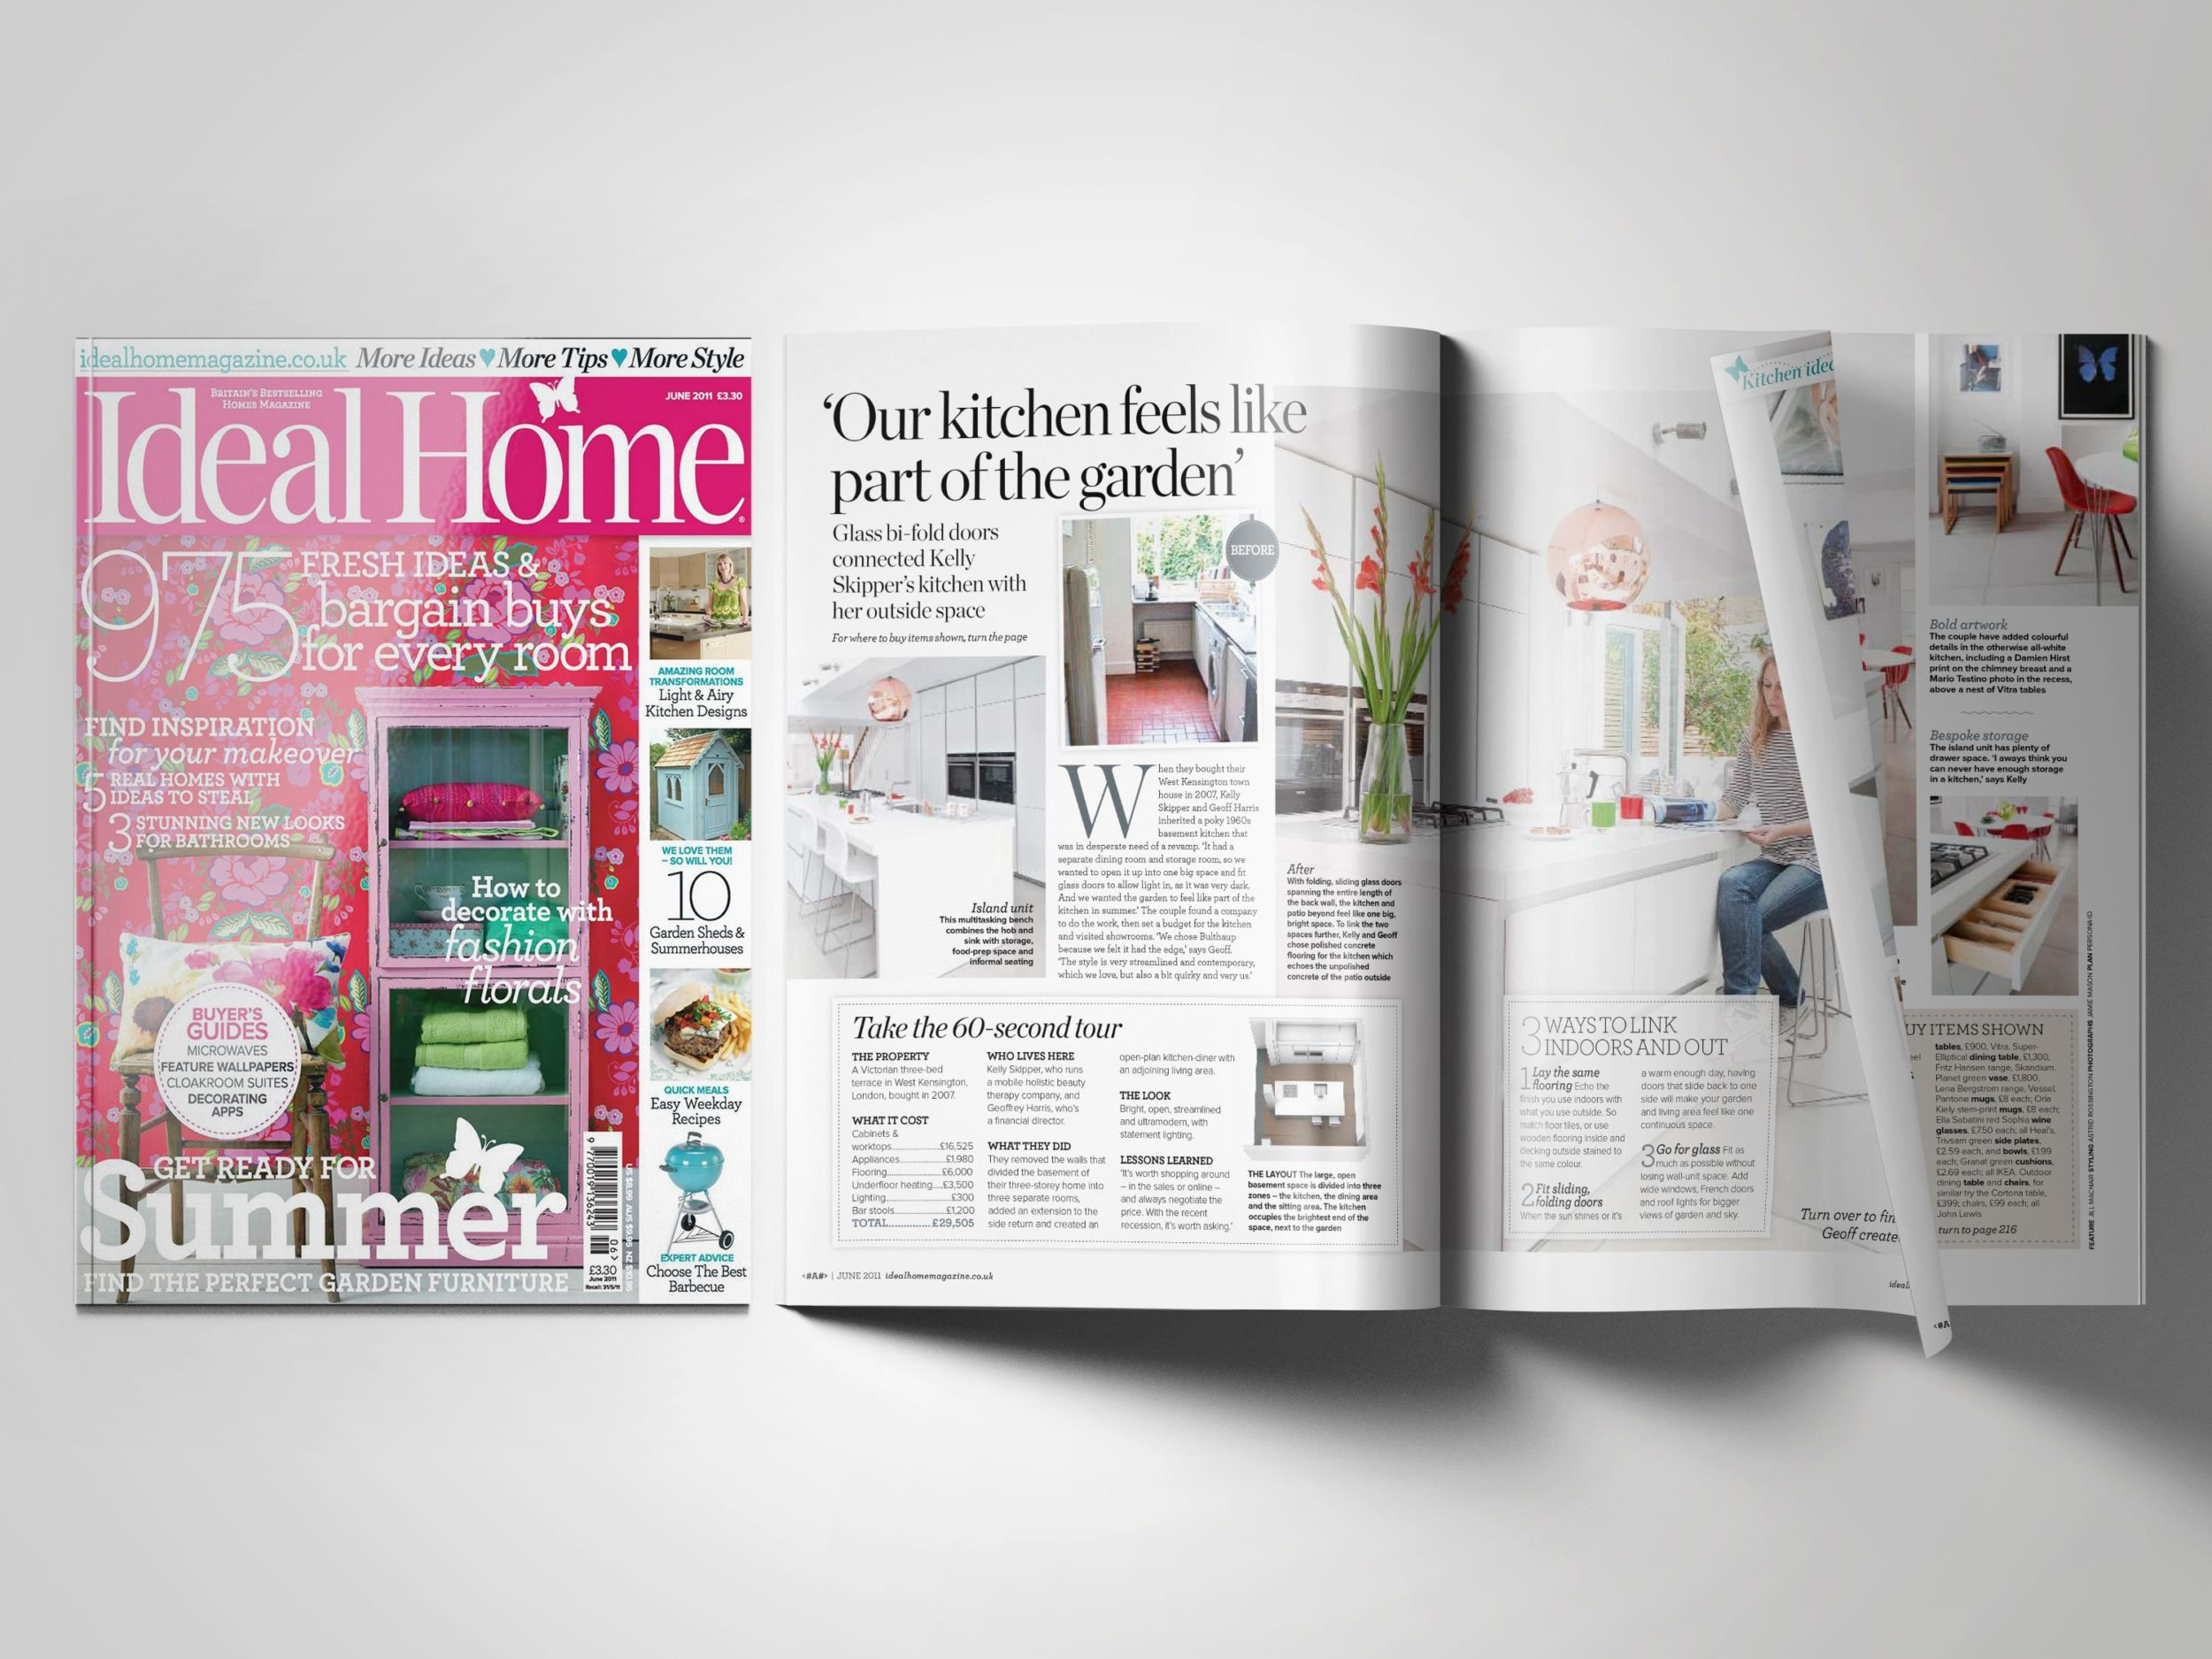 Ideal Home June 2011